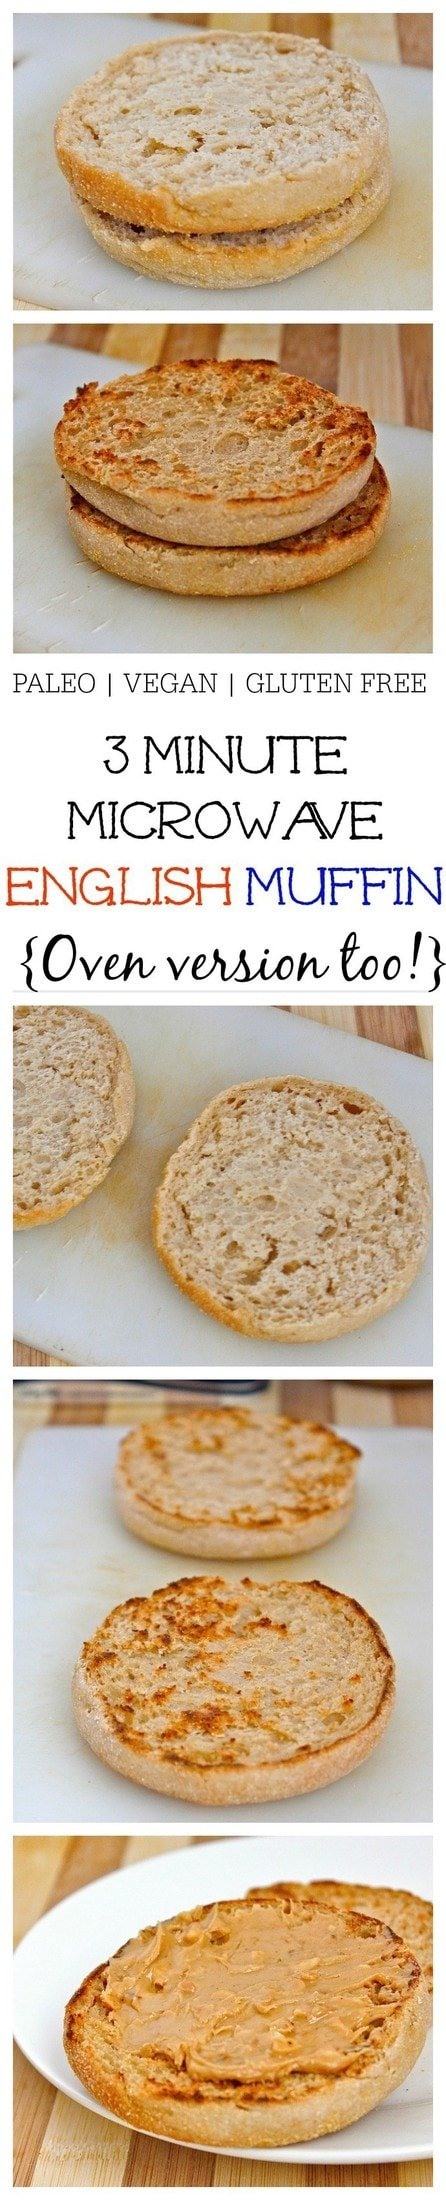 Healthy 3 Minute Microwave English Muffin made with NO flour, NO oil, NO butter and comes with a tested oven option! {vegan, gluten free, paleo recipe}- thebigmansworld.com